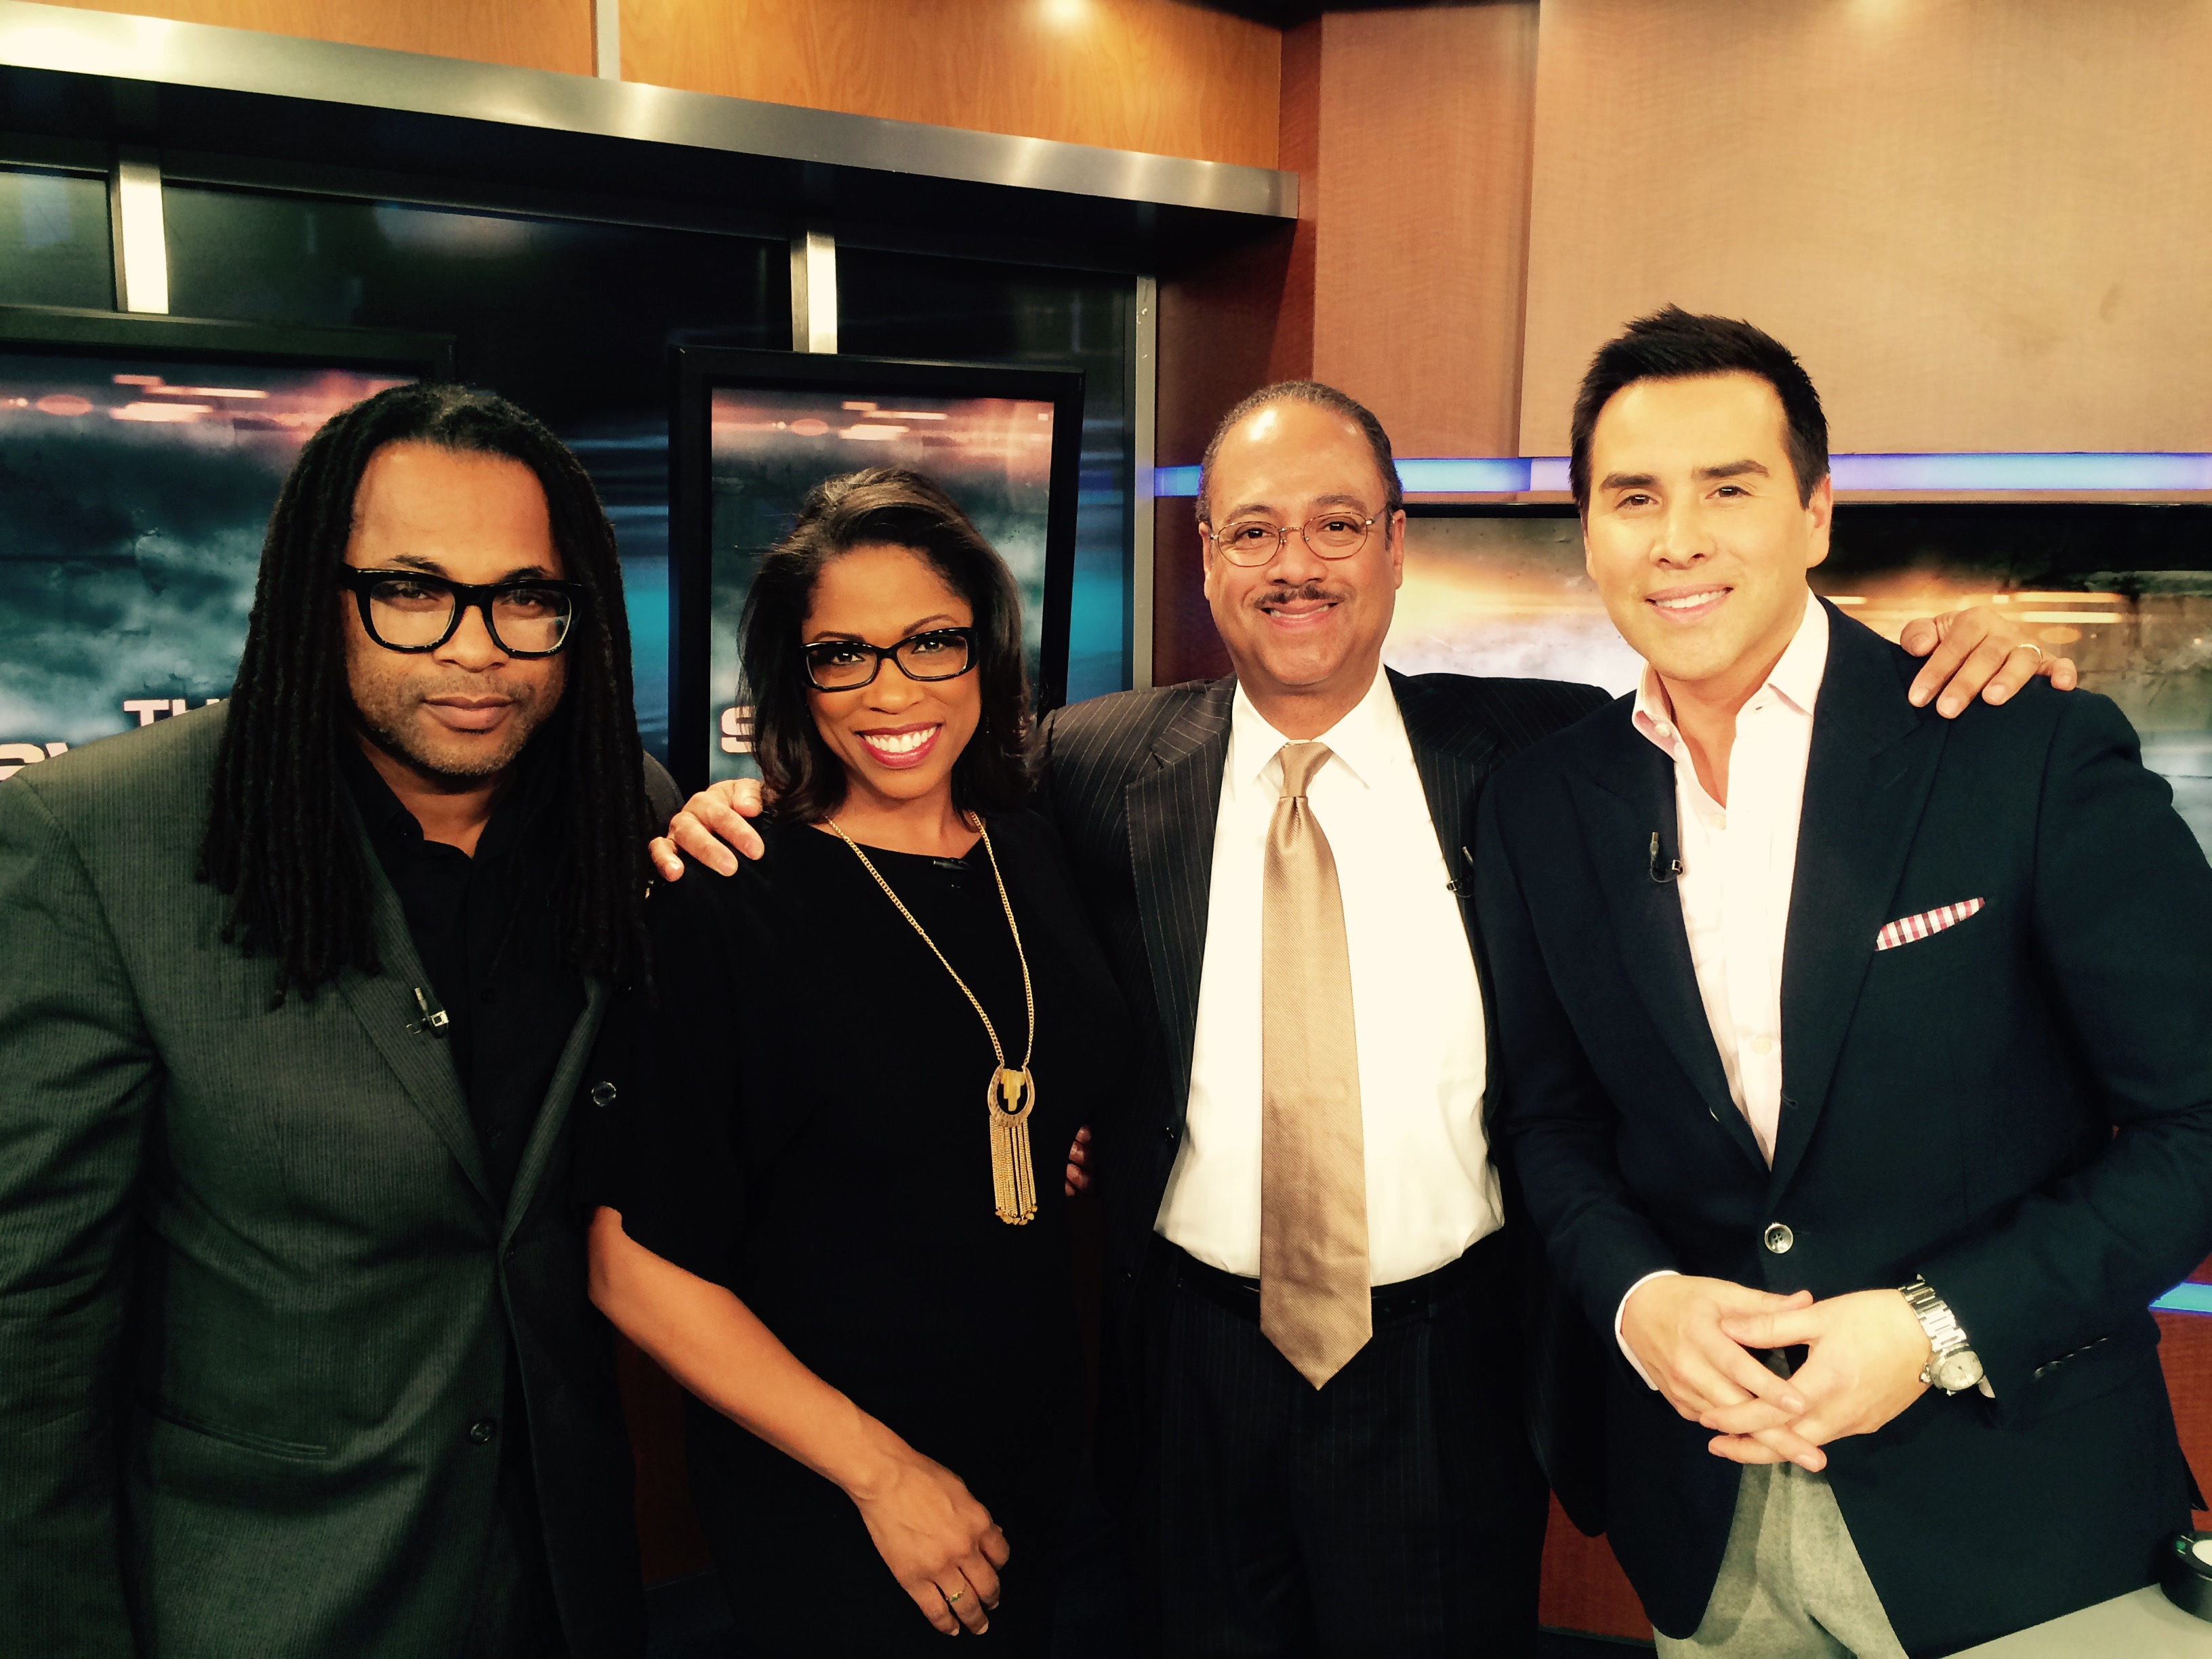 VIDEO: EZ STREET APPEARS ON FOX 5 #THESWITCH WITH WILL THOMAS